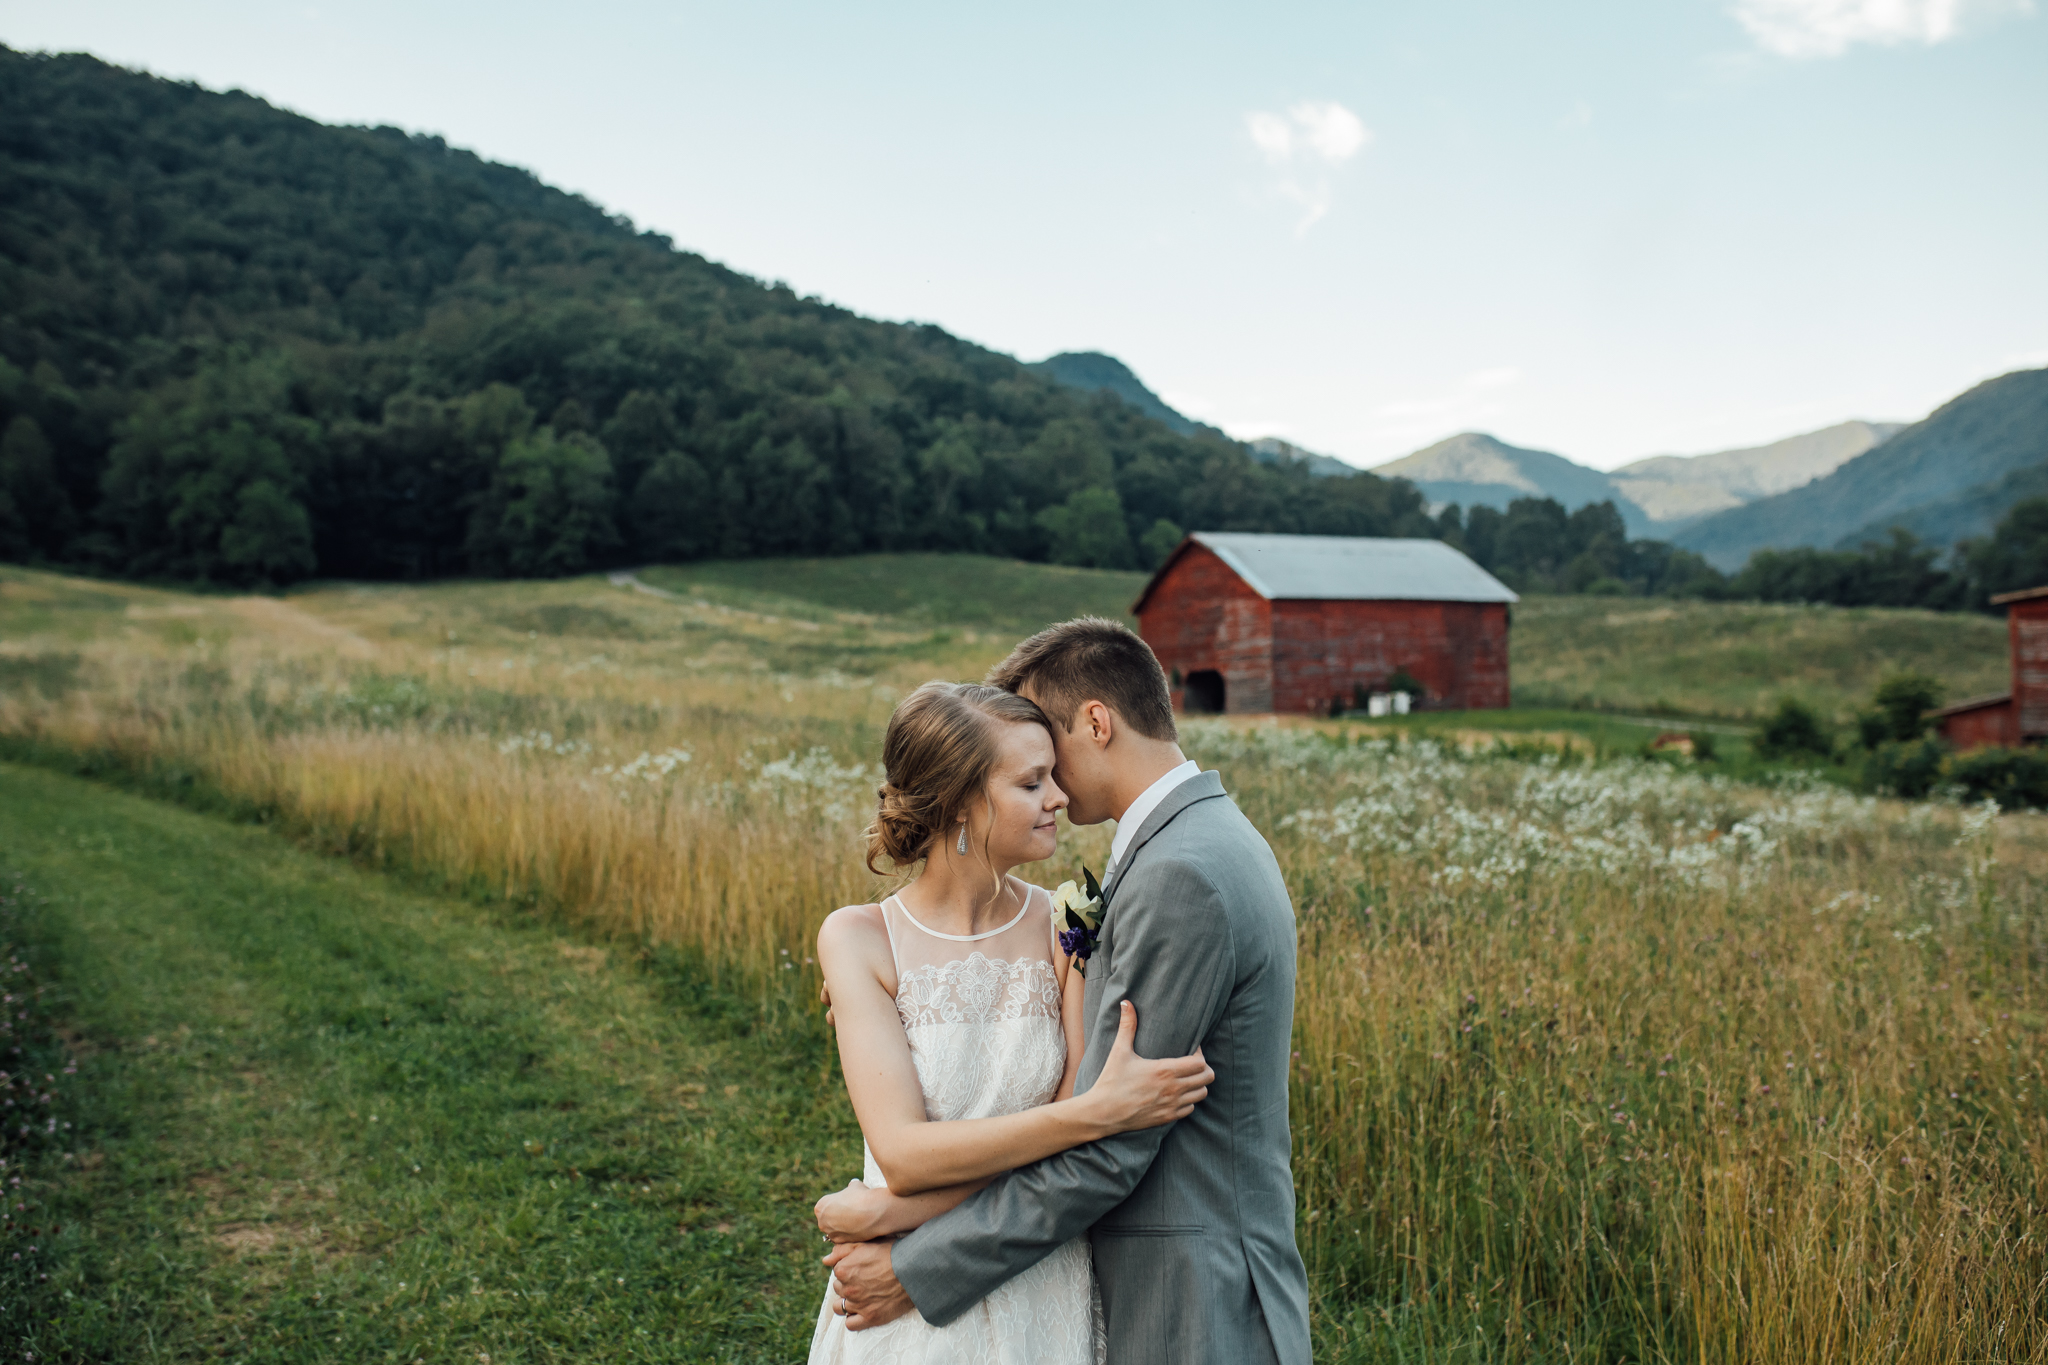 ashville-wedding-photographers-thewarmtharoundyou--backyard-asheville-wedding-mountain-wedding (217 of 244).jpg